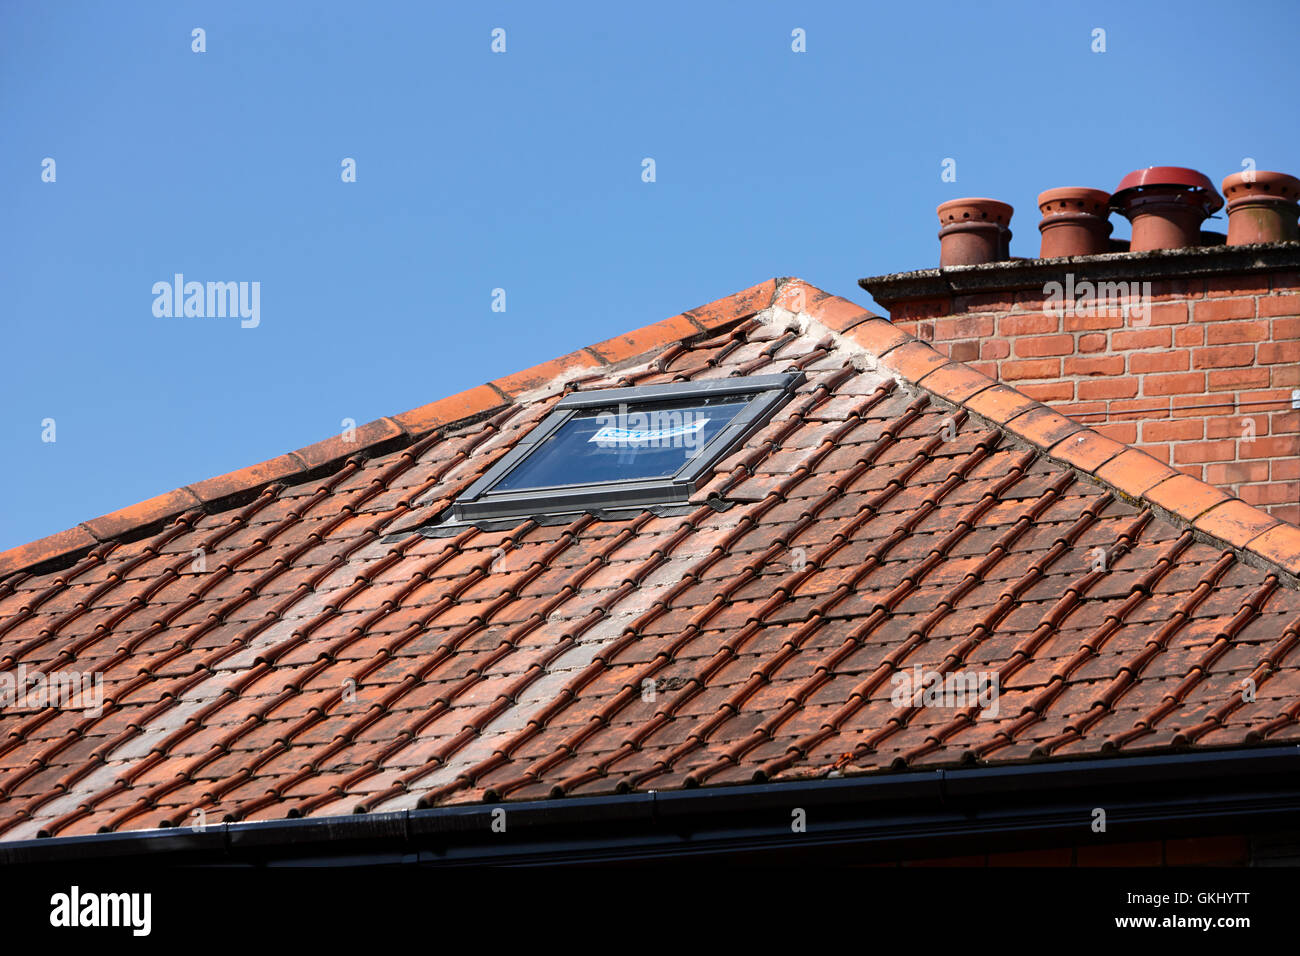 keylite roof window in a loft conversion of an older house - Stock Image